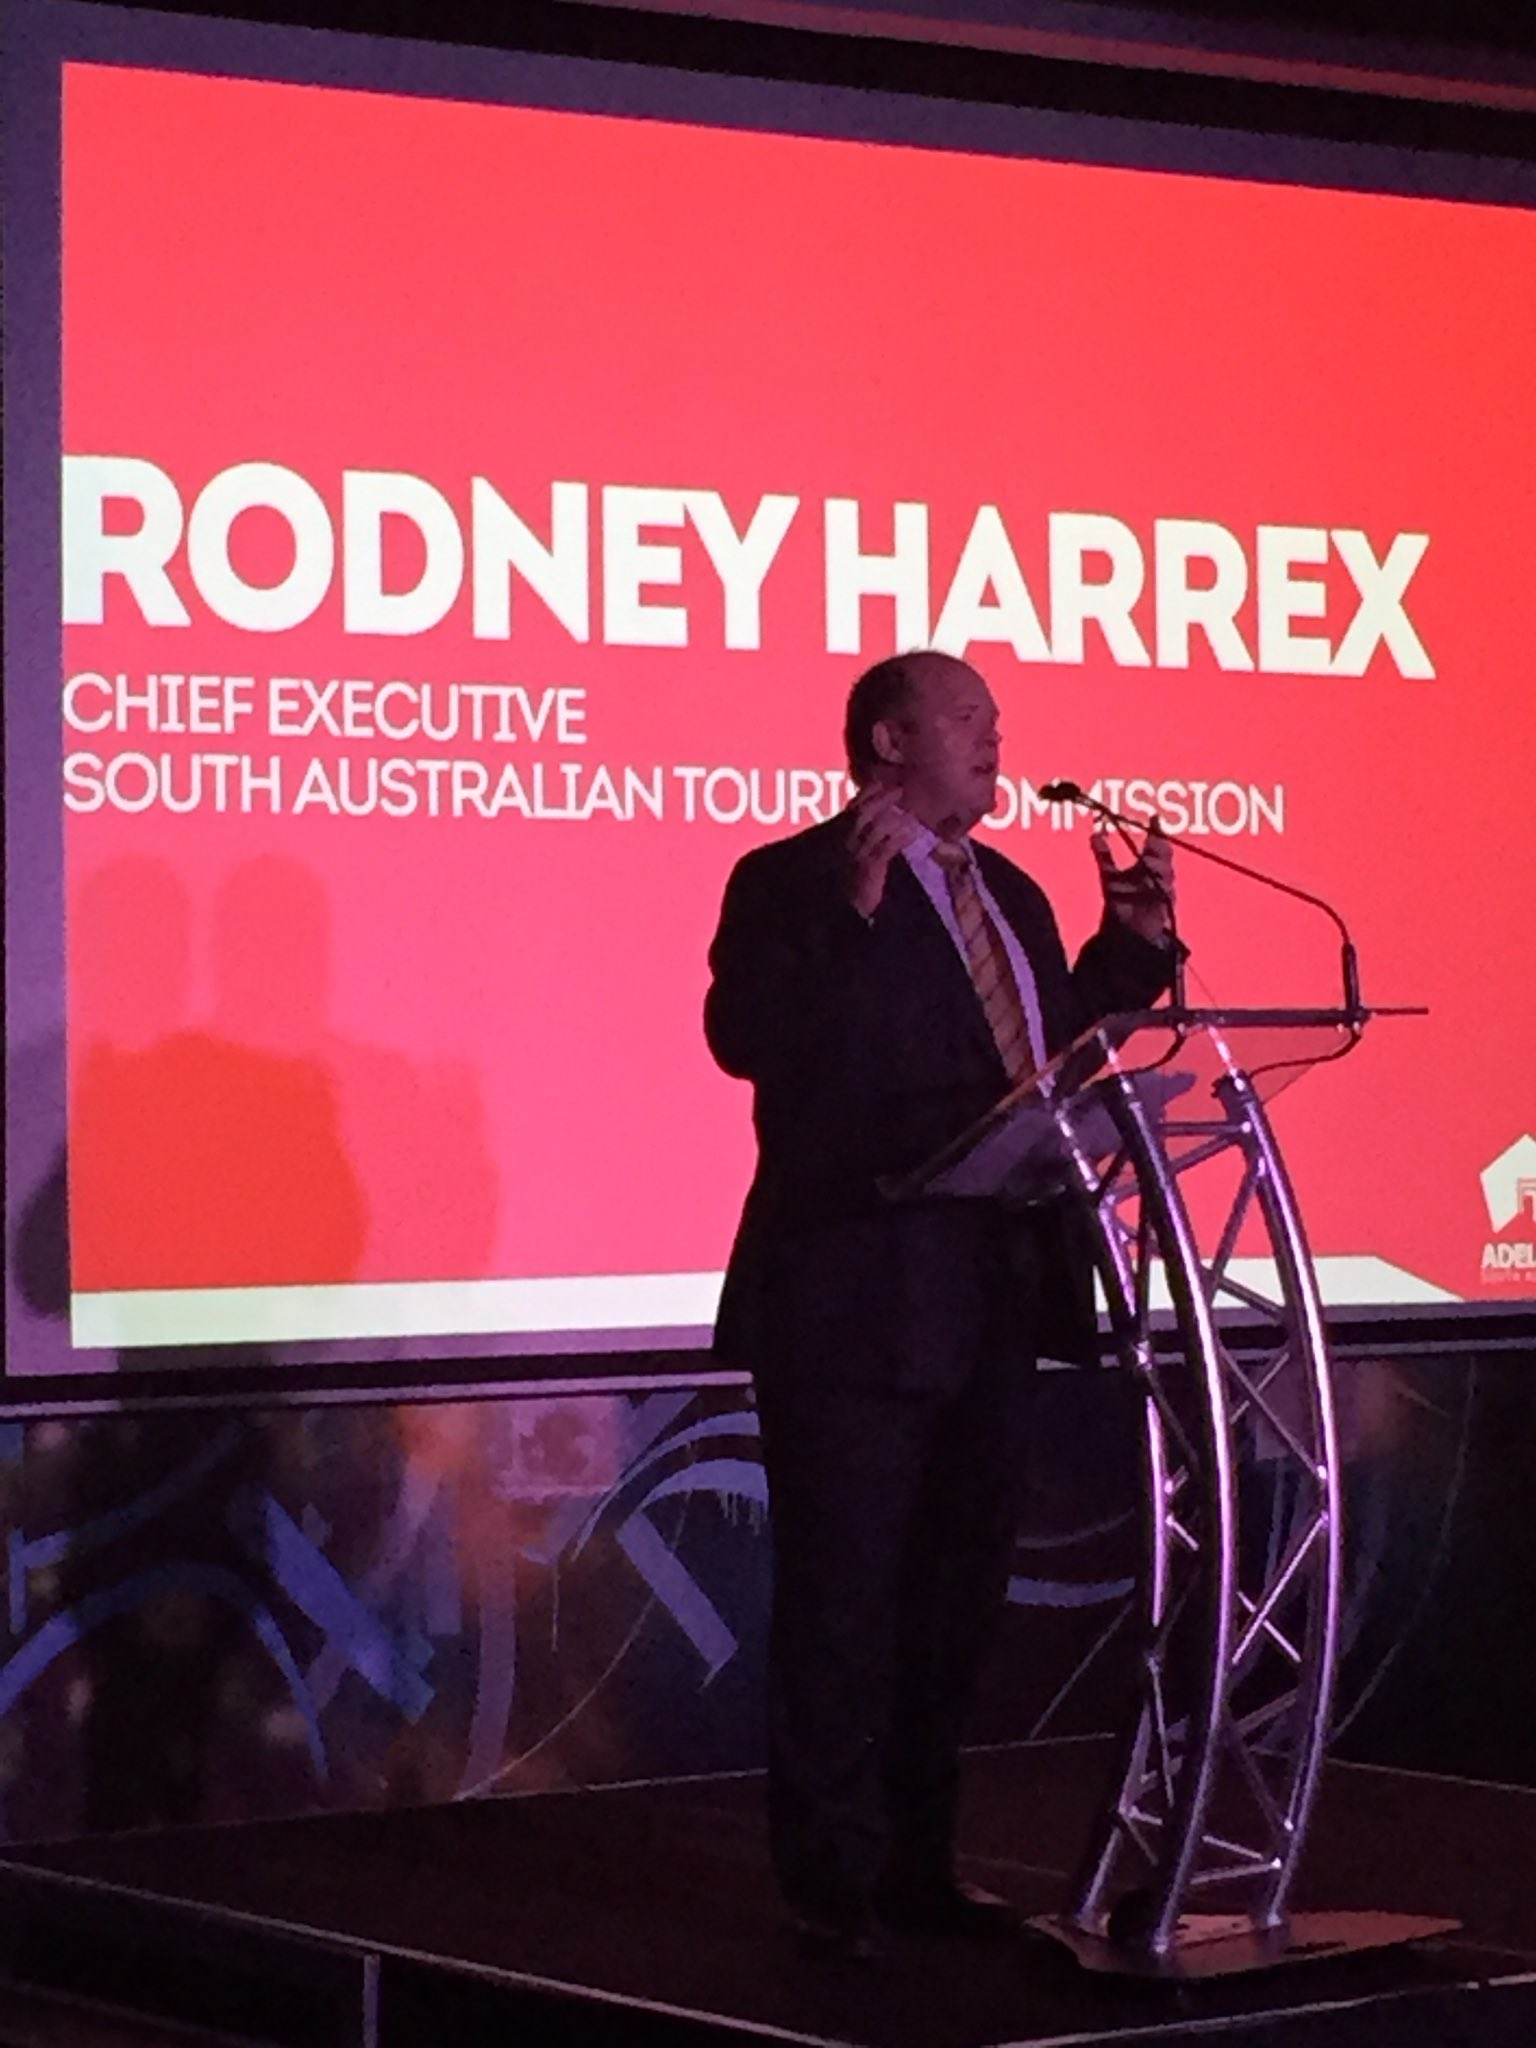 Great to have been at @tourismsa launch with @rodharrex. Congrats on the new campaign! #seeaustralia @TourismAus https://t.co/9b9sDDwemh